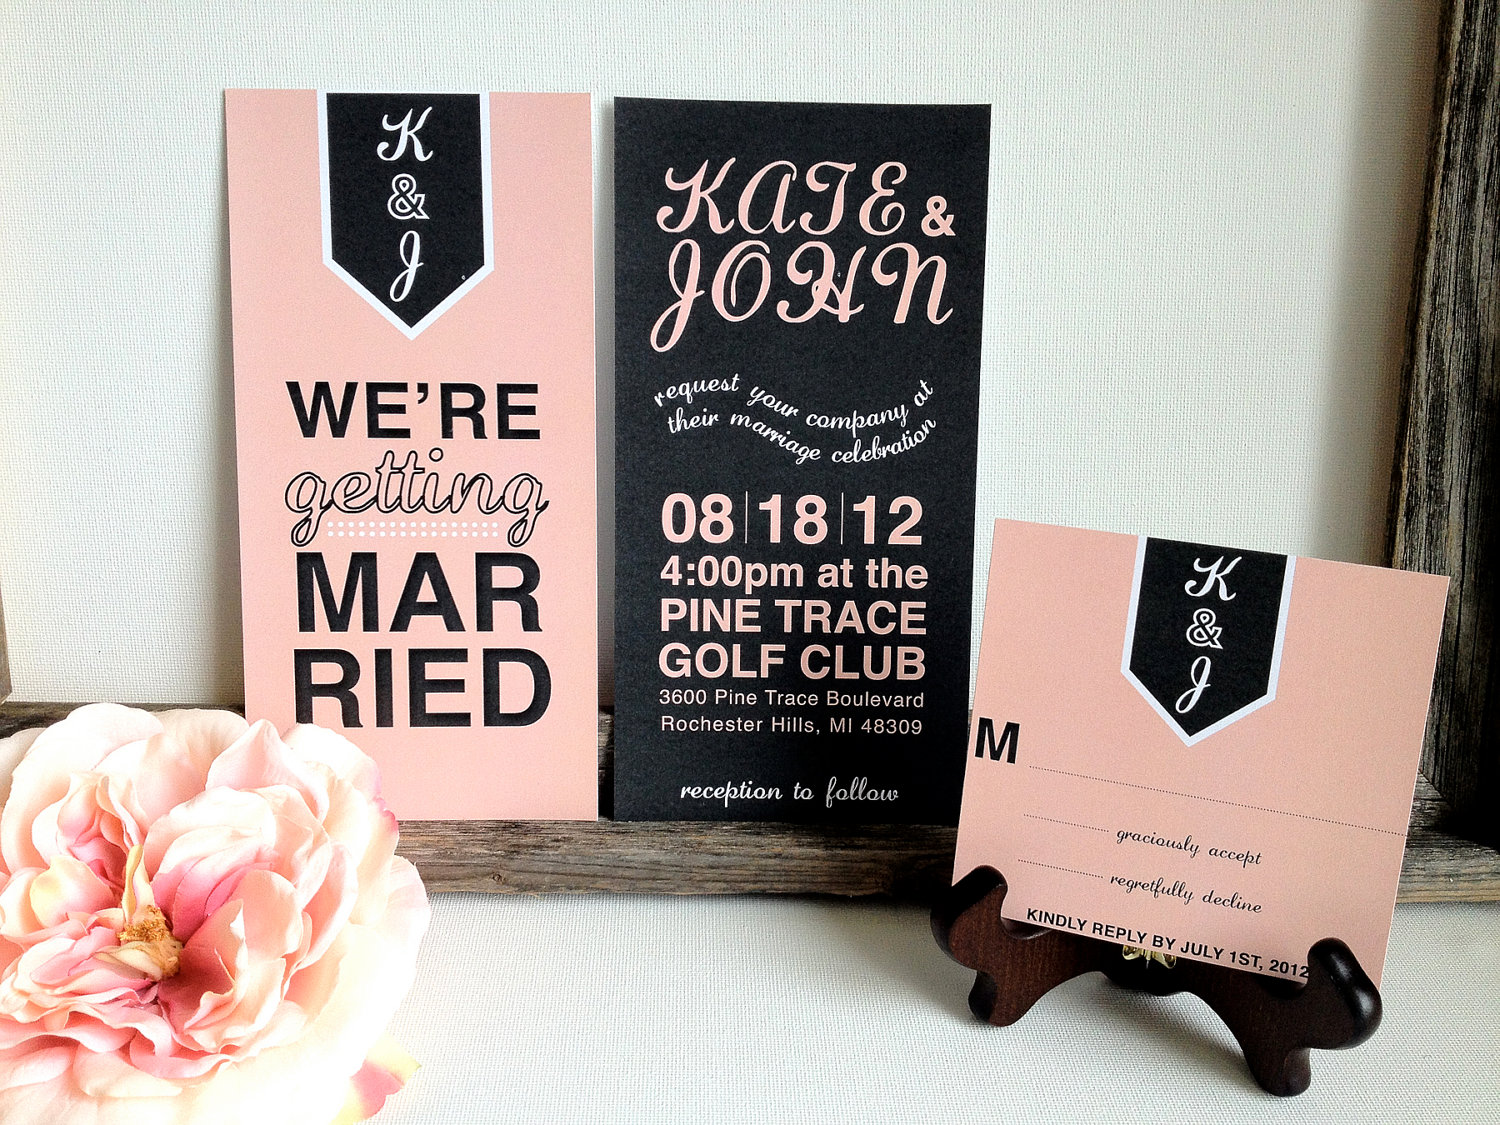 Wedding-invitations-for-modern-weddings-etsy-wedding-finds-coral-black.original